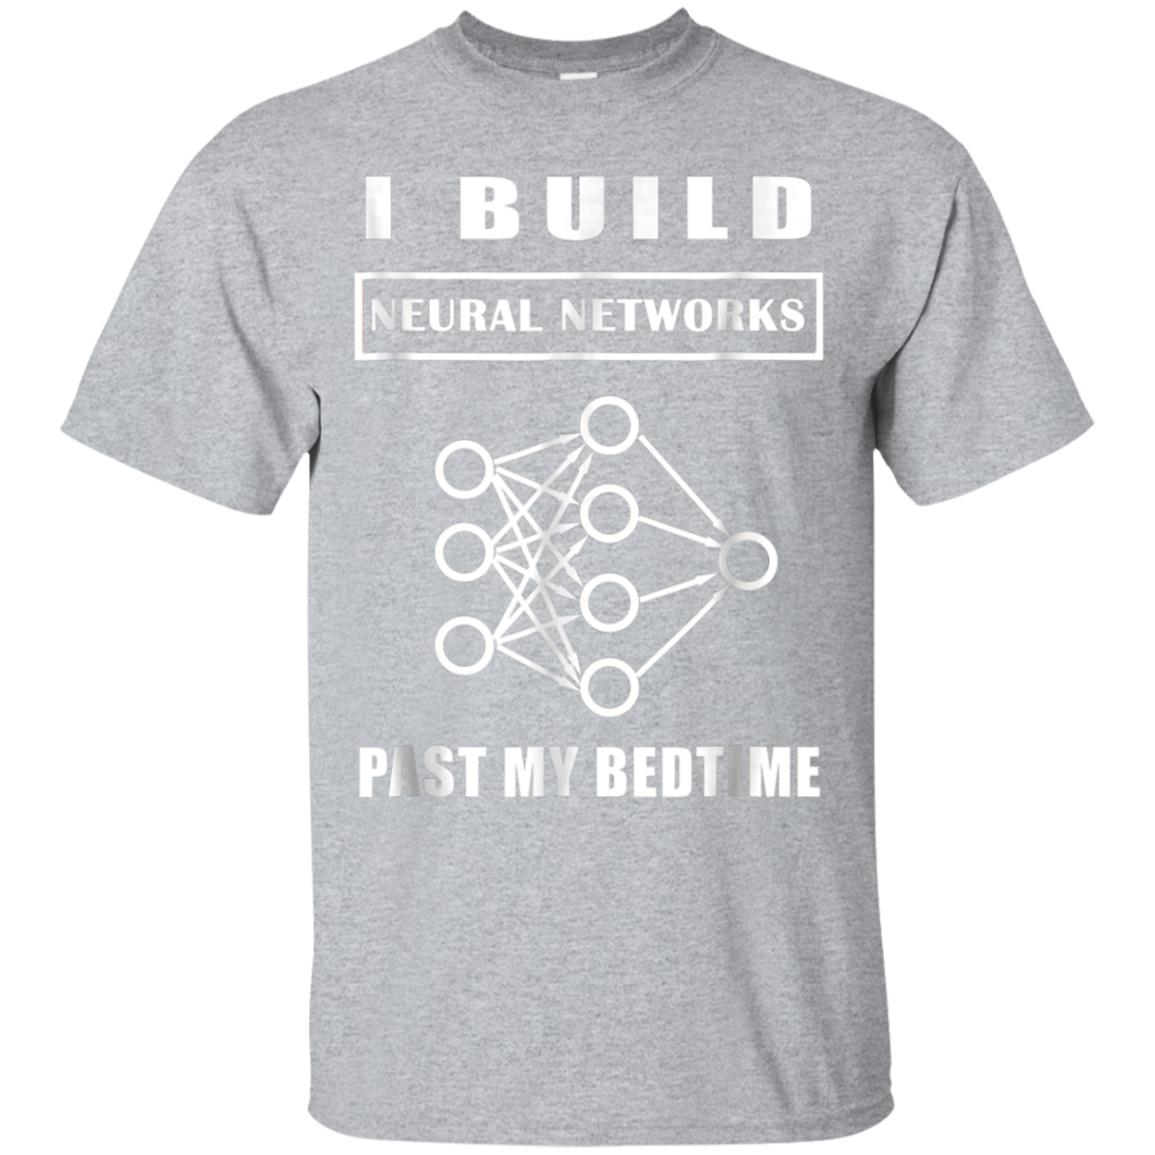 Data Scientist T Shirt Build Neural Networks Past My Bedtime 99promocode